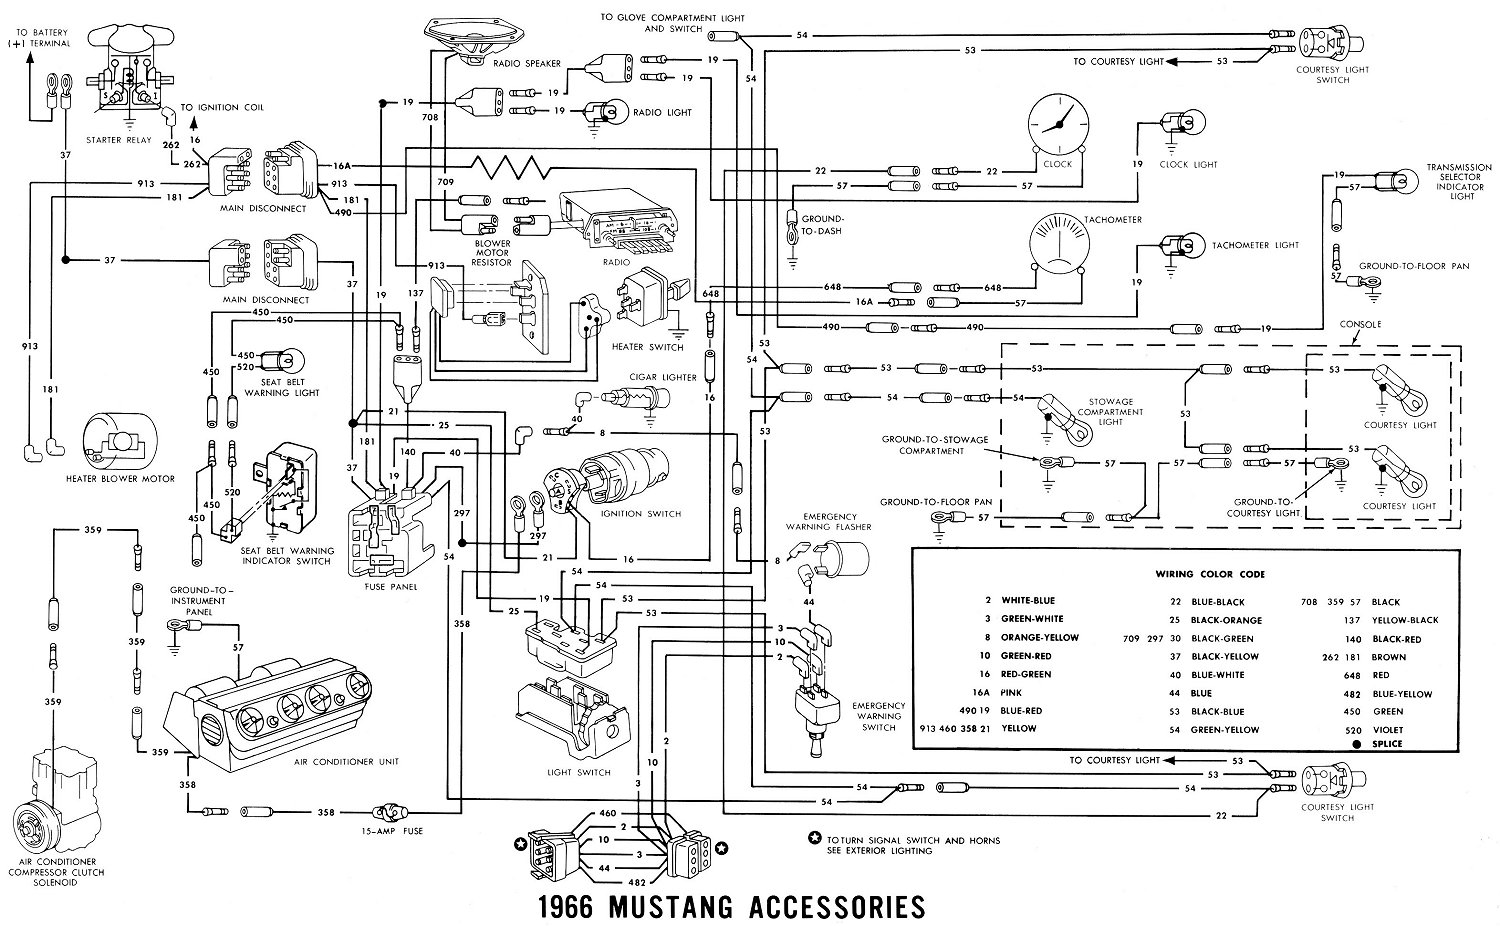 66acces1 1966 mustang wiring diagram 1966 mustang ignition wiring diagram 1966 mustang starter wiring diagram at alyssarenee.co